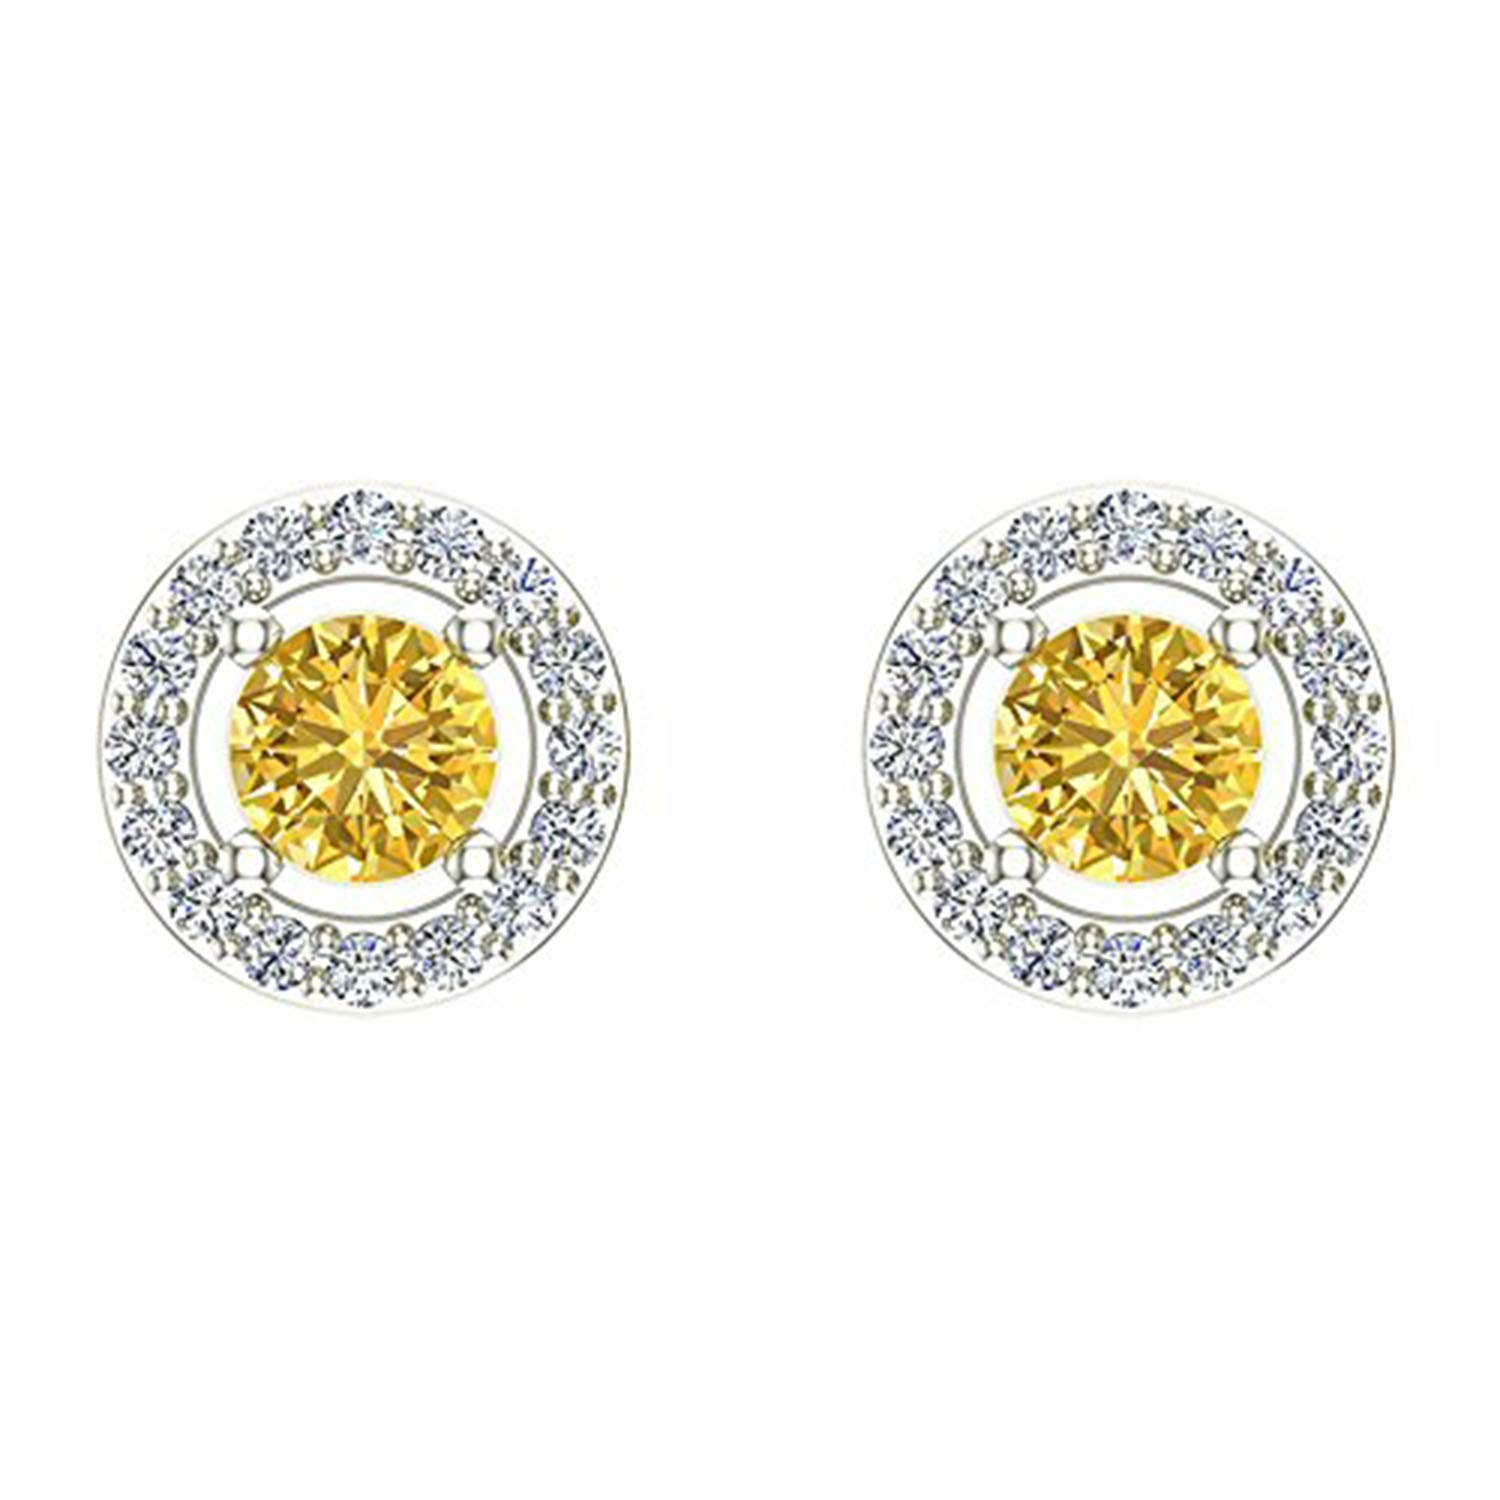 Girls Jewelry 14K White Gold Plated Simulated Diamond /& Yellow Sapphire Studded Screwback Round Frame Stud Earrings For Women